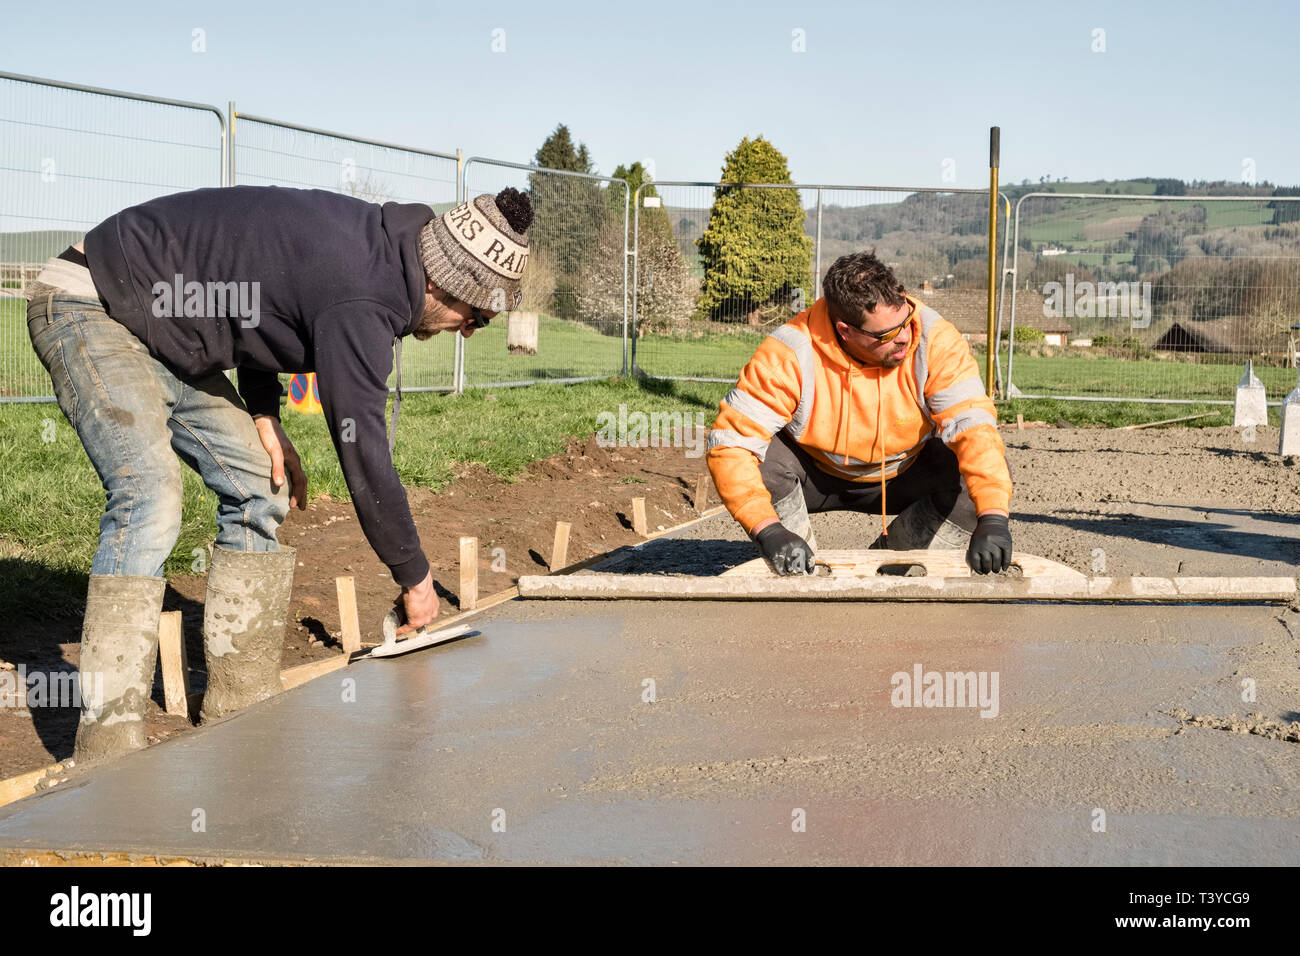 Presteigne, Powys, Wales, UK. Workmen using concrete floats to smooth the surface of a freshly laid concrete floor - Stock Image